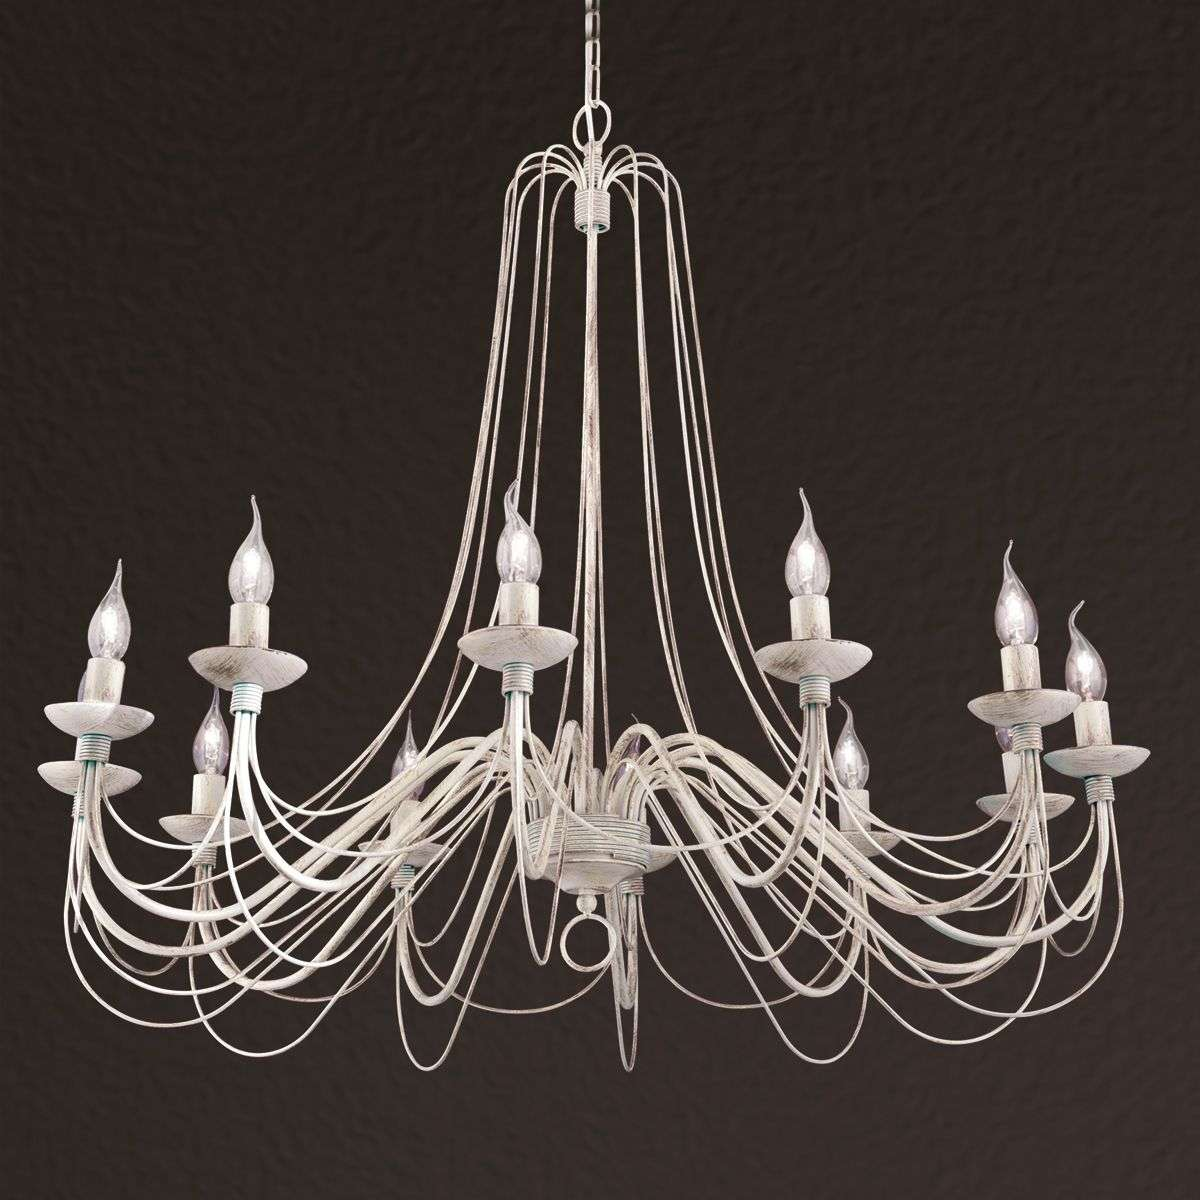 Rustic Country Style Chandelier Antonina 12 Light 7255076 31